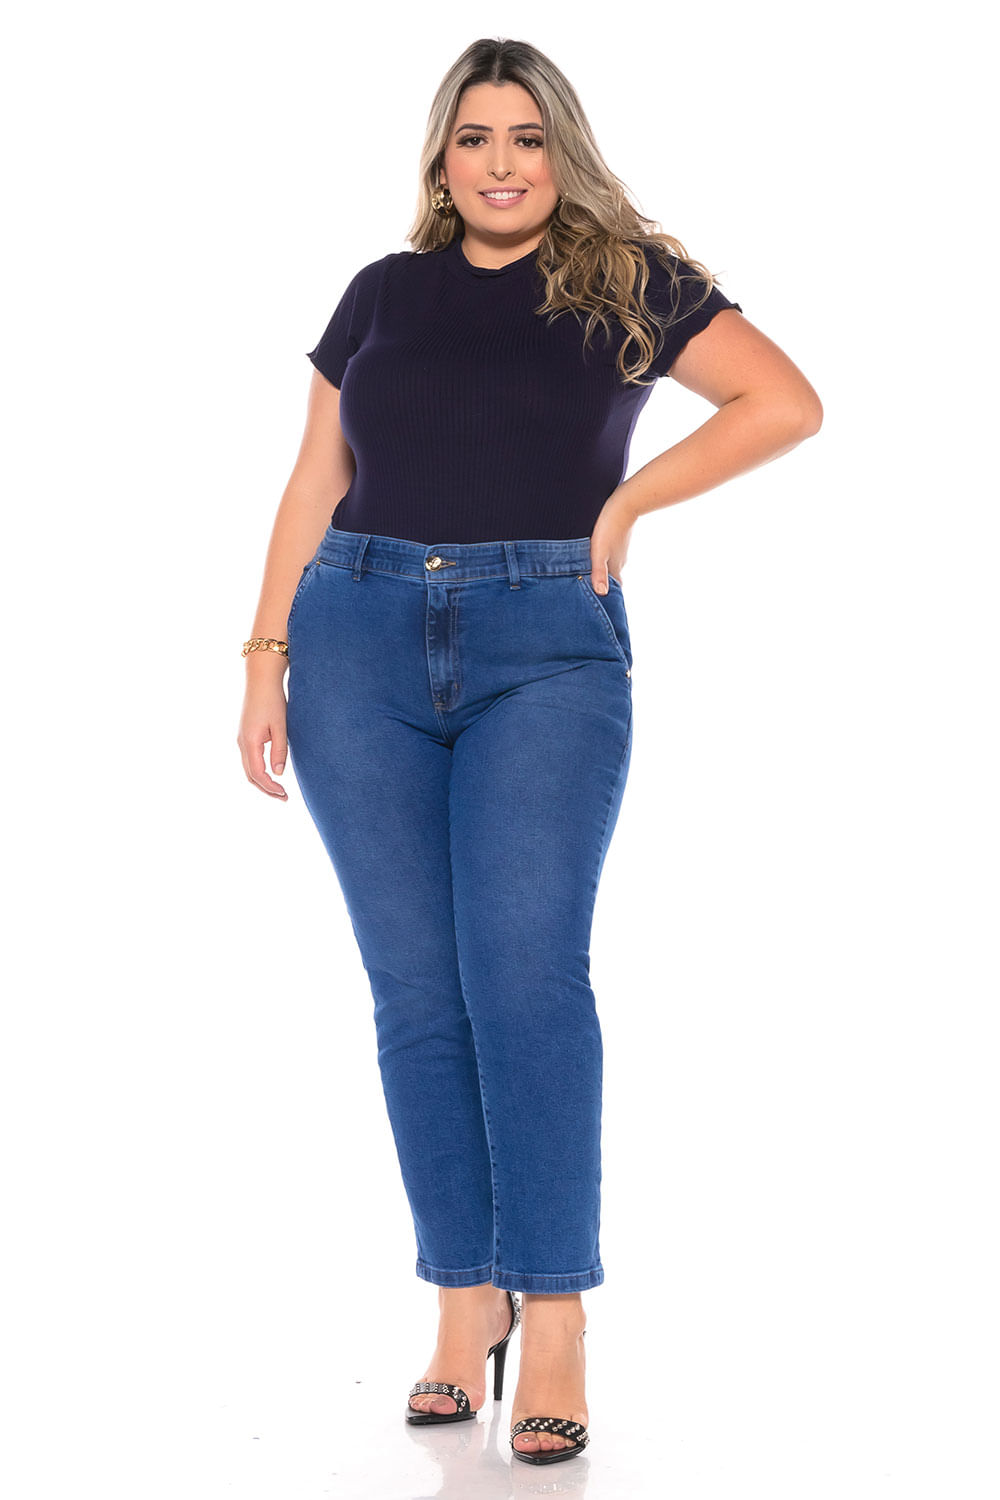 FCT5146_Calca_Cropped_Plus_Size_Jeans_AZUL_1